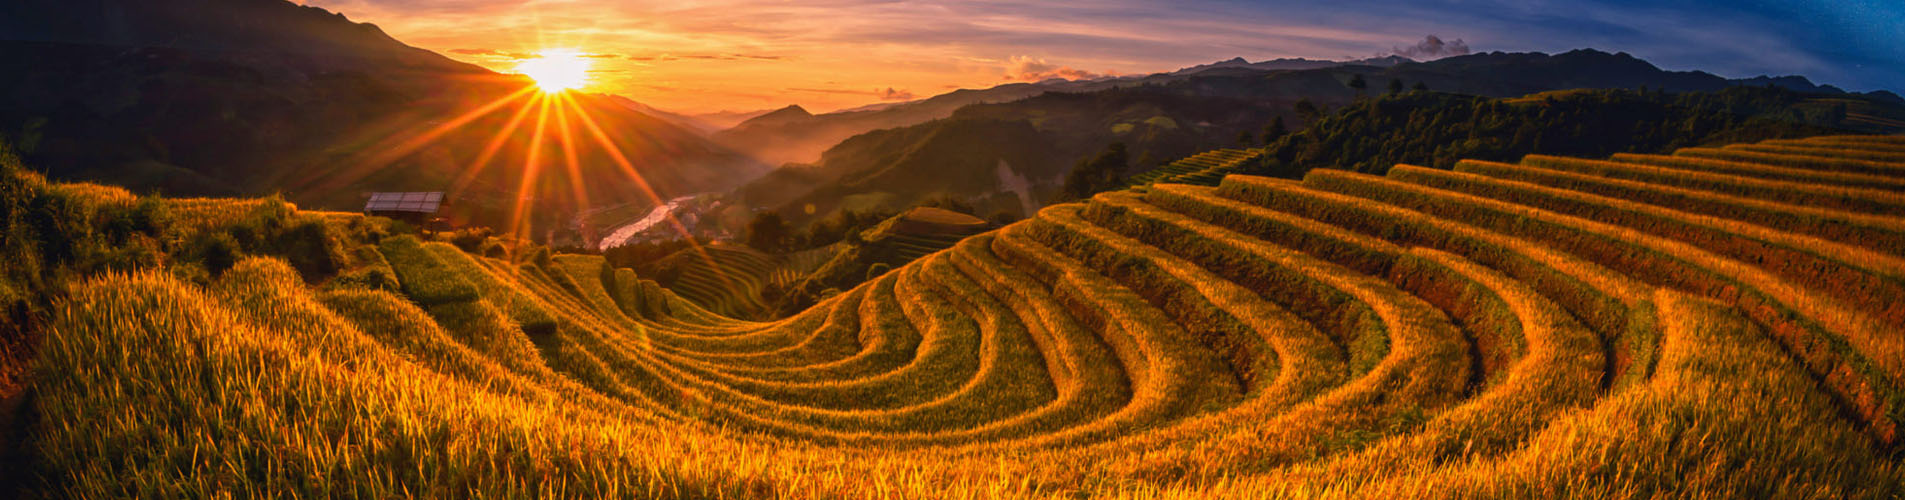 mu cang chai rice terrace